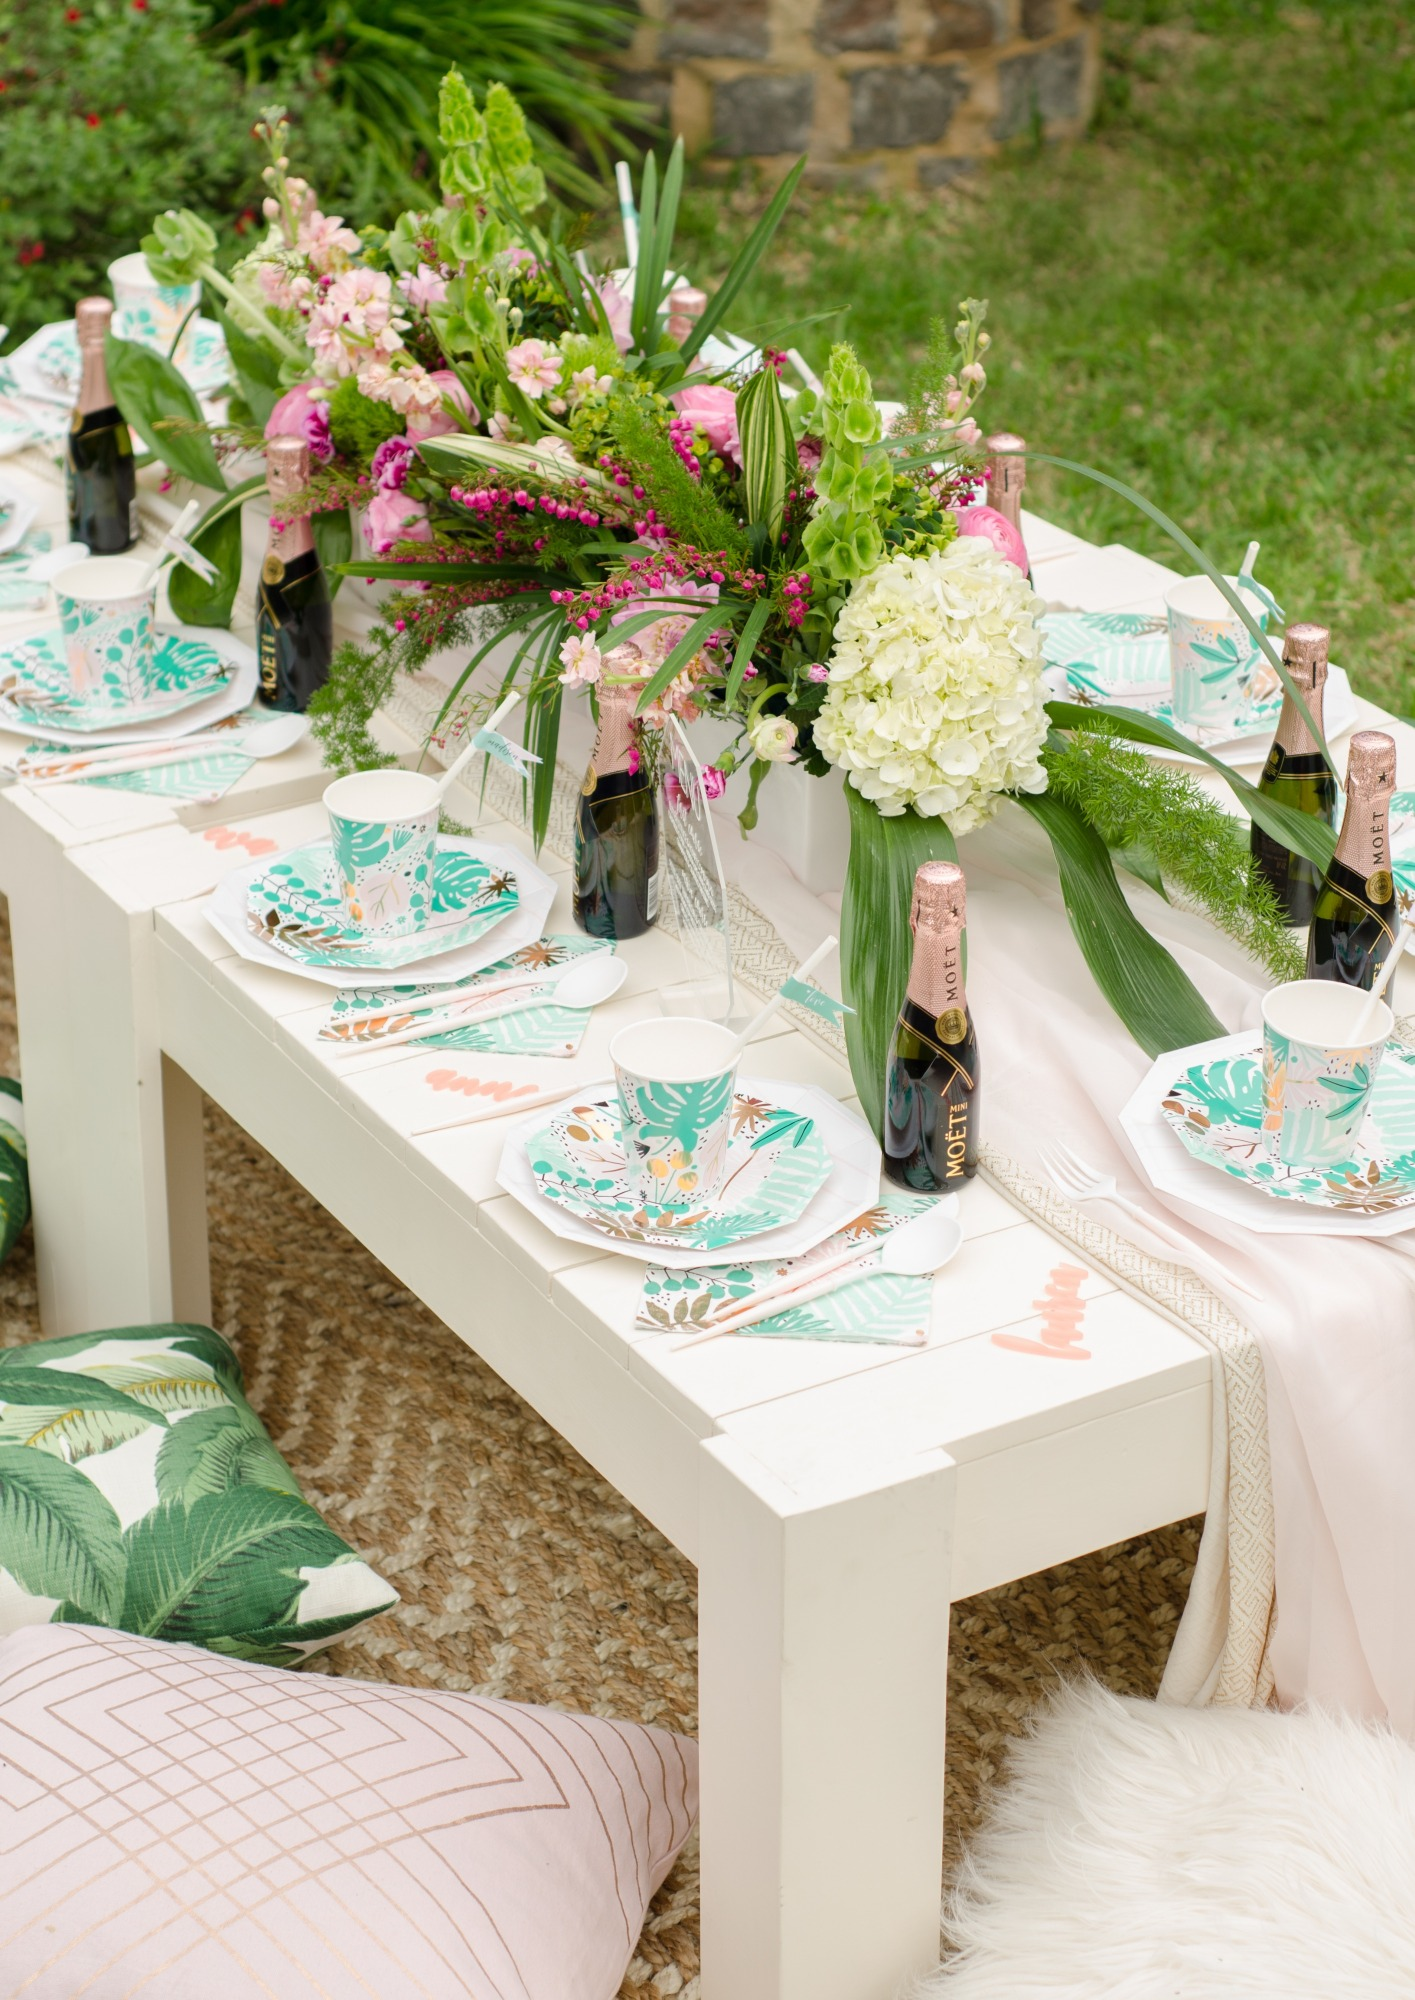 Tablescape from Tropicale Bridal Shower Featuring Daydream Society | Styled by Mint Event Design | Black Twine